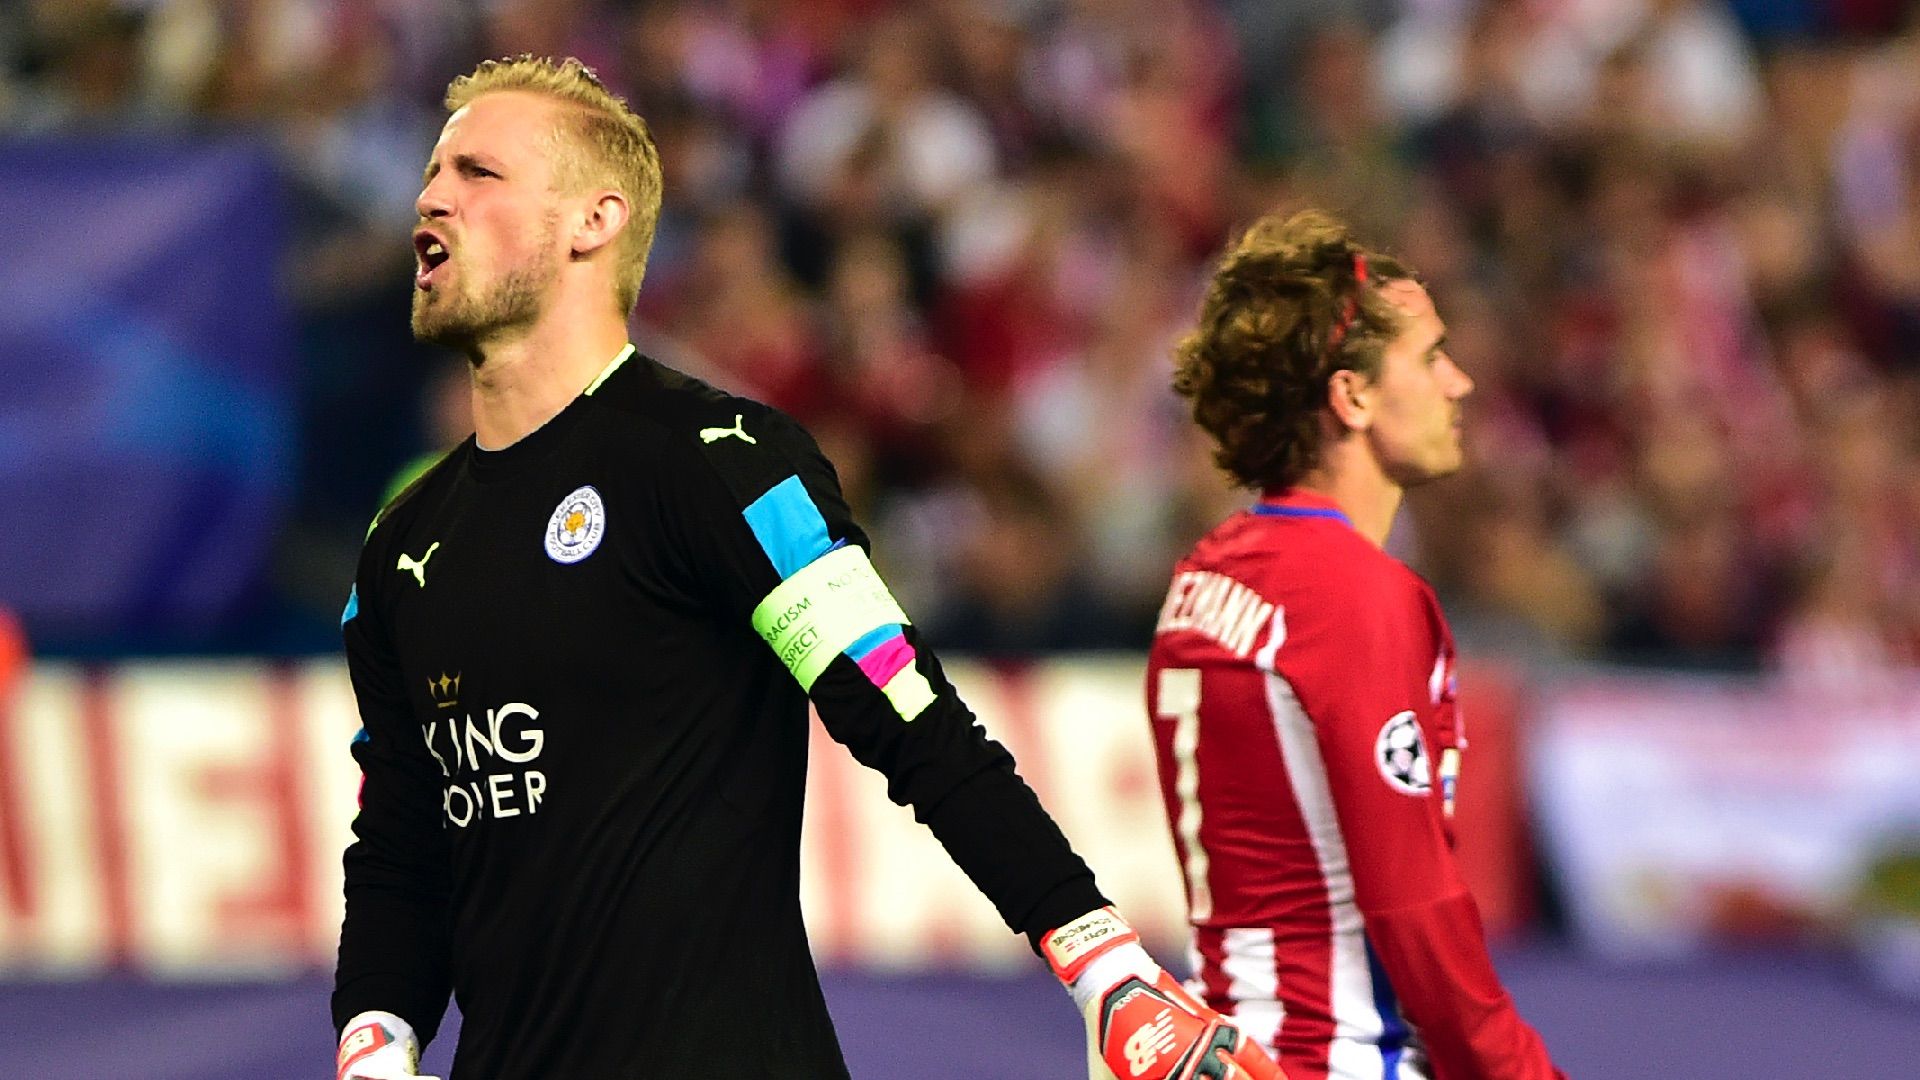 Leicester manager blames poor refereeing for Atletico loss